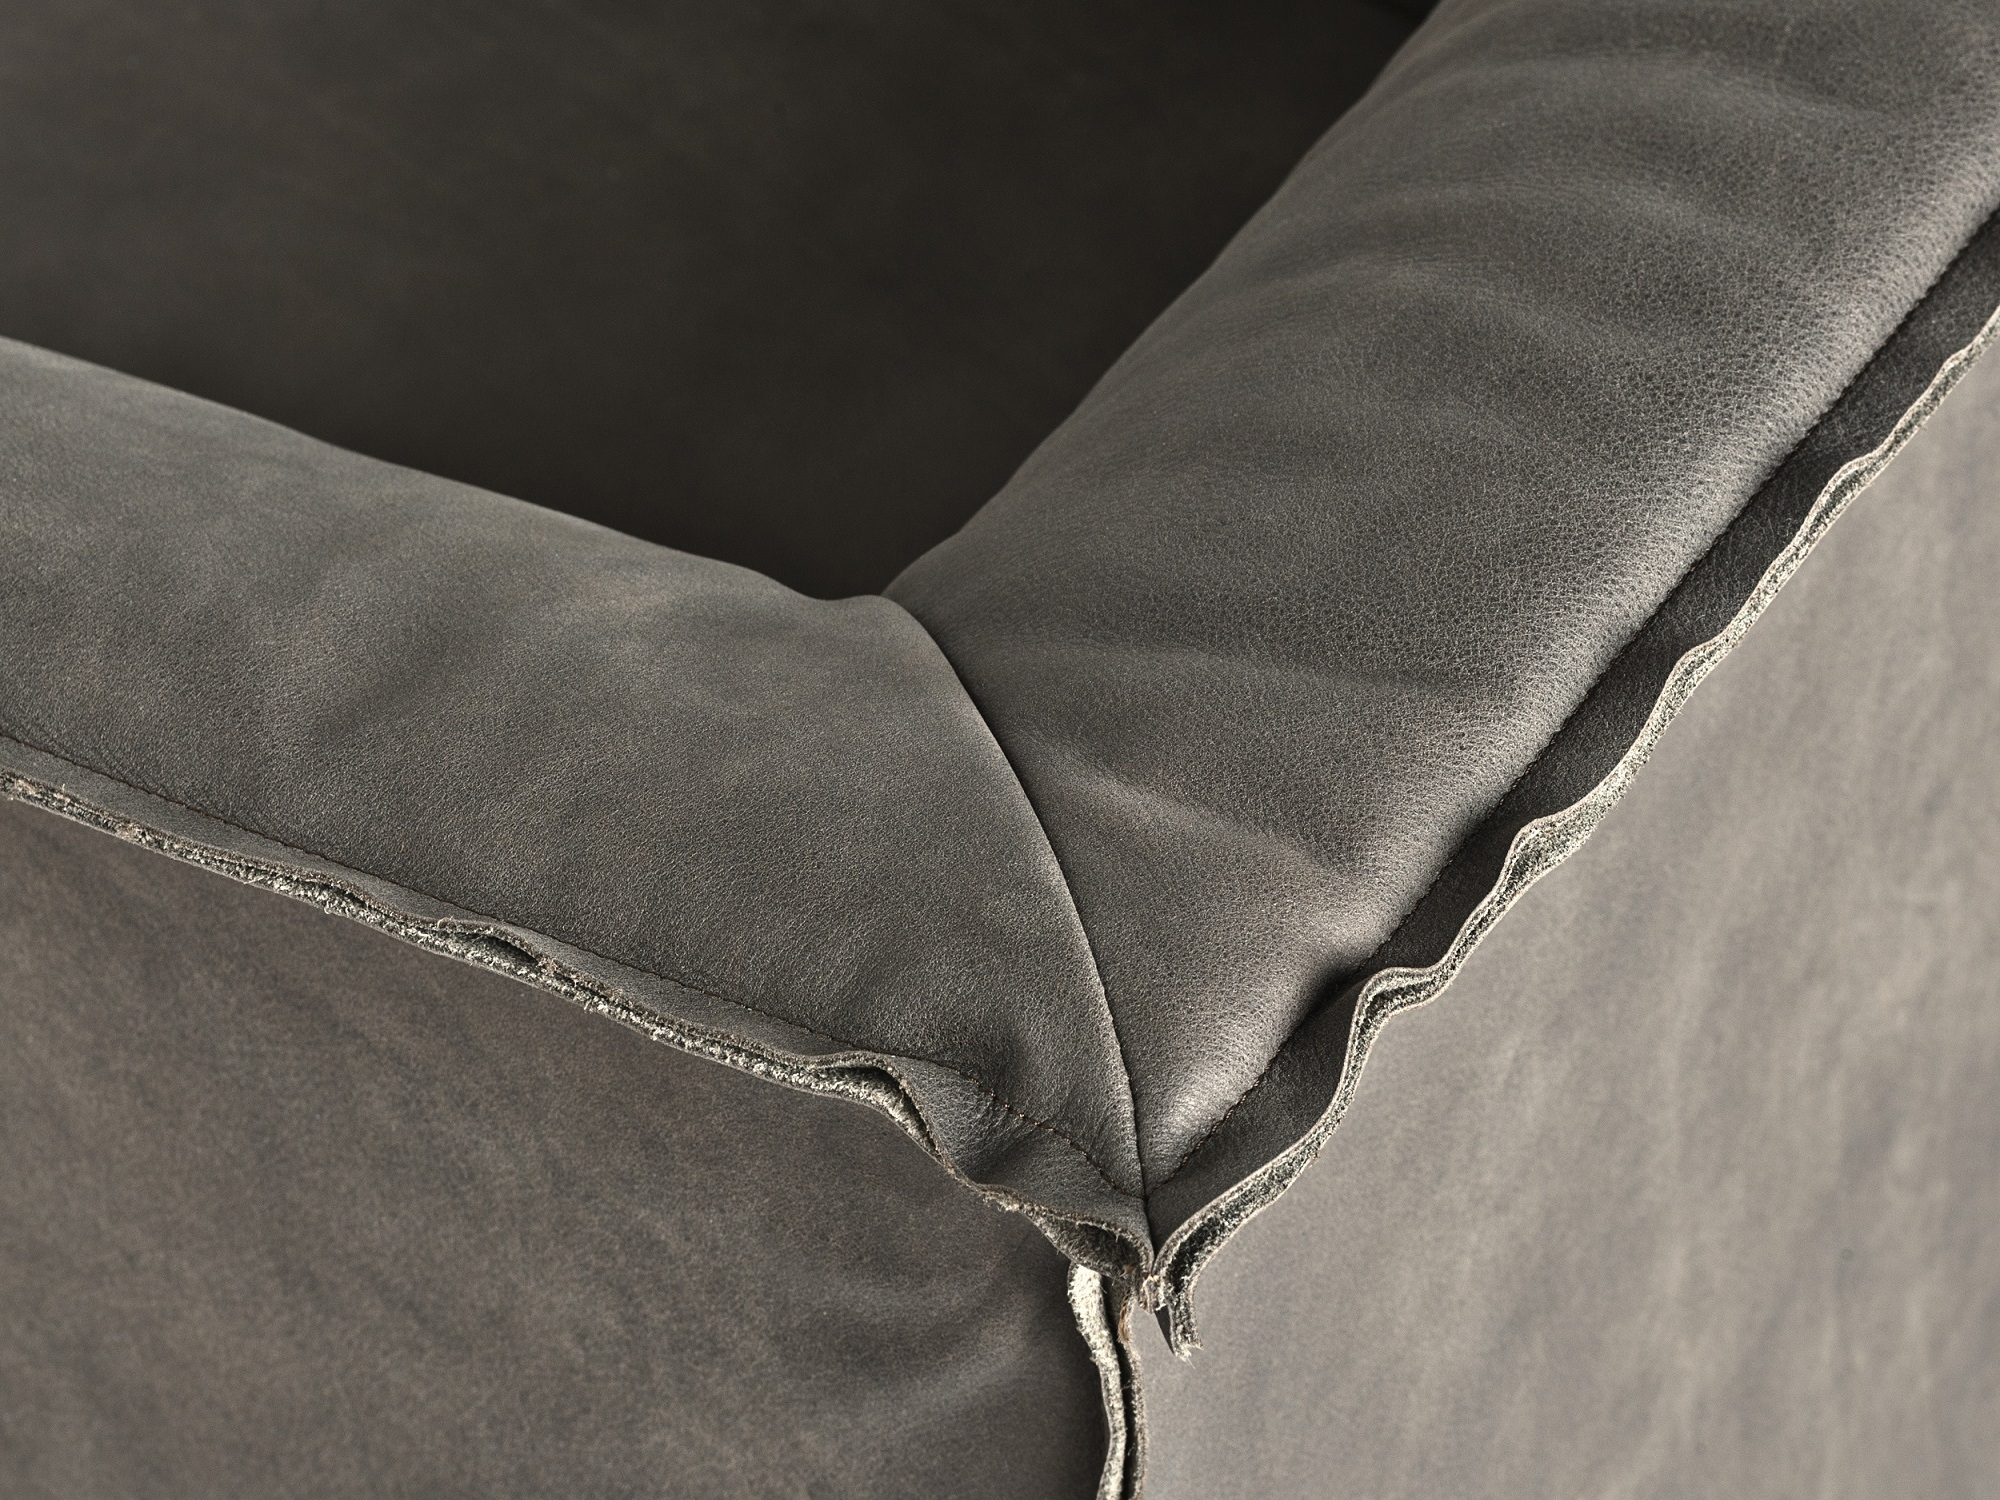 Leather Specialists - Frag is a historic producer of furniture since 1921, nearly 100 years.